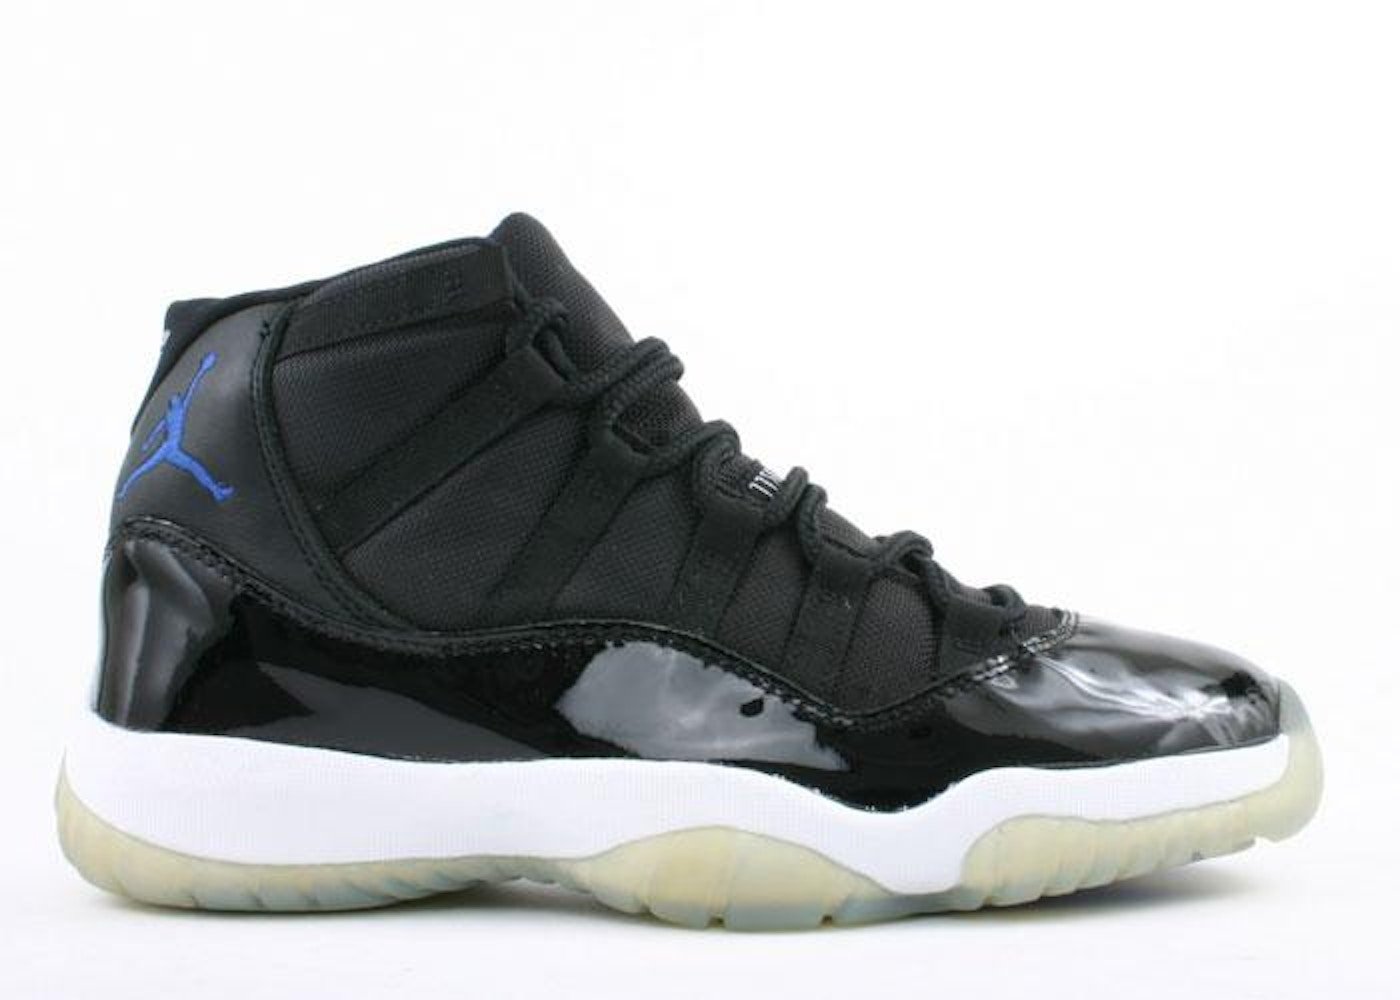 huge selection of 4a64d 34b4c Jordan 11 Retro Space Jam (2000) - 136046-041